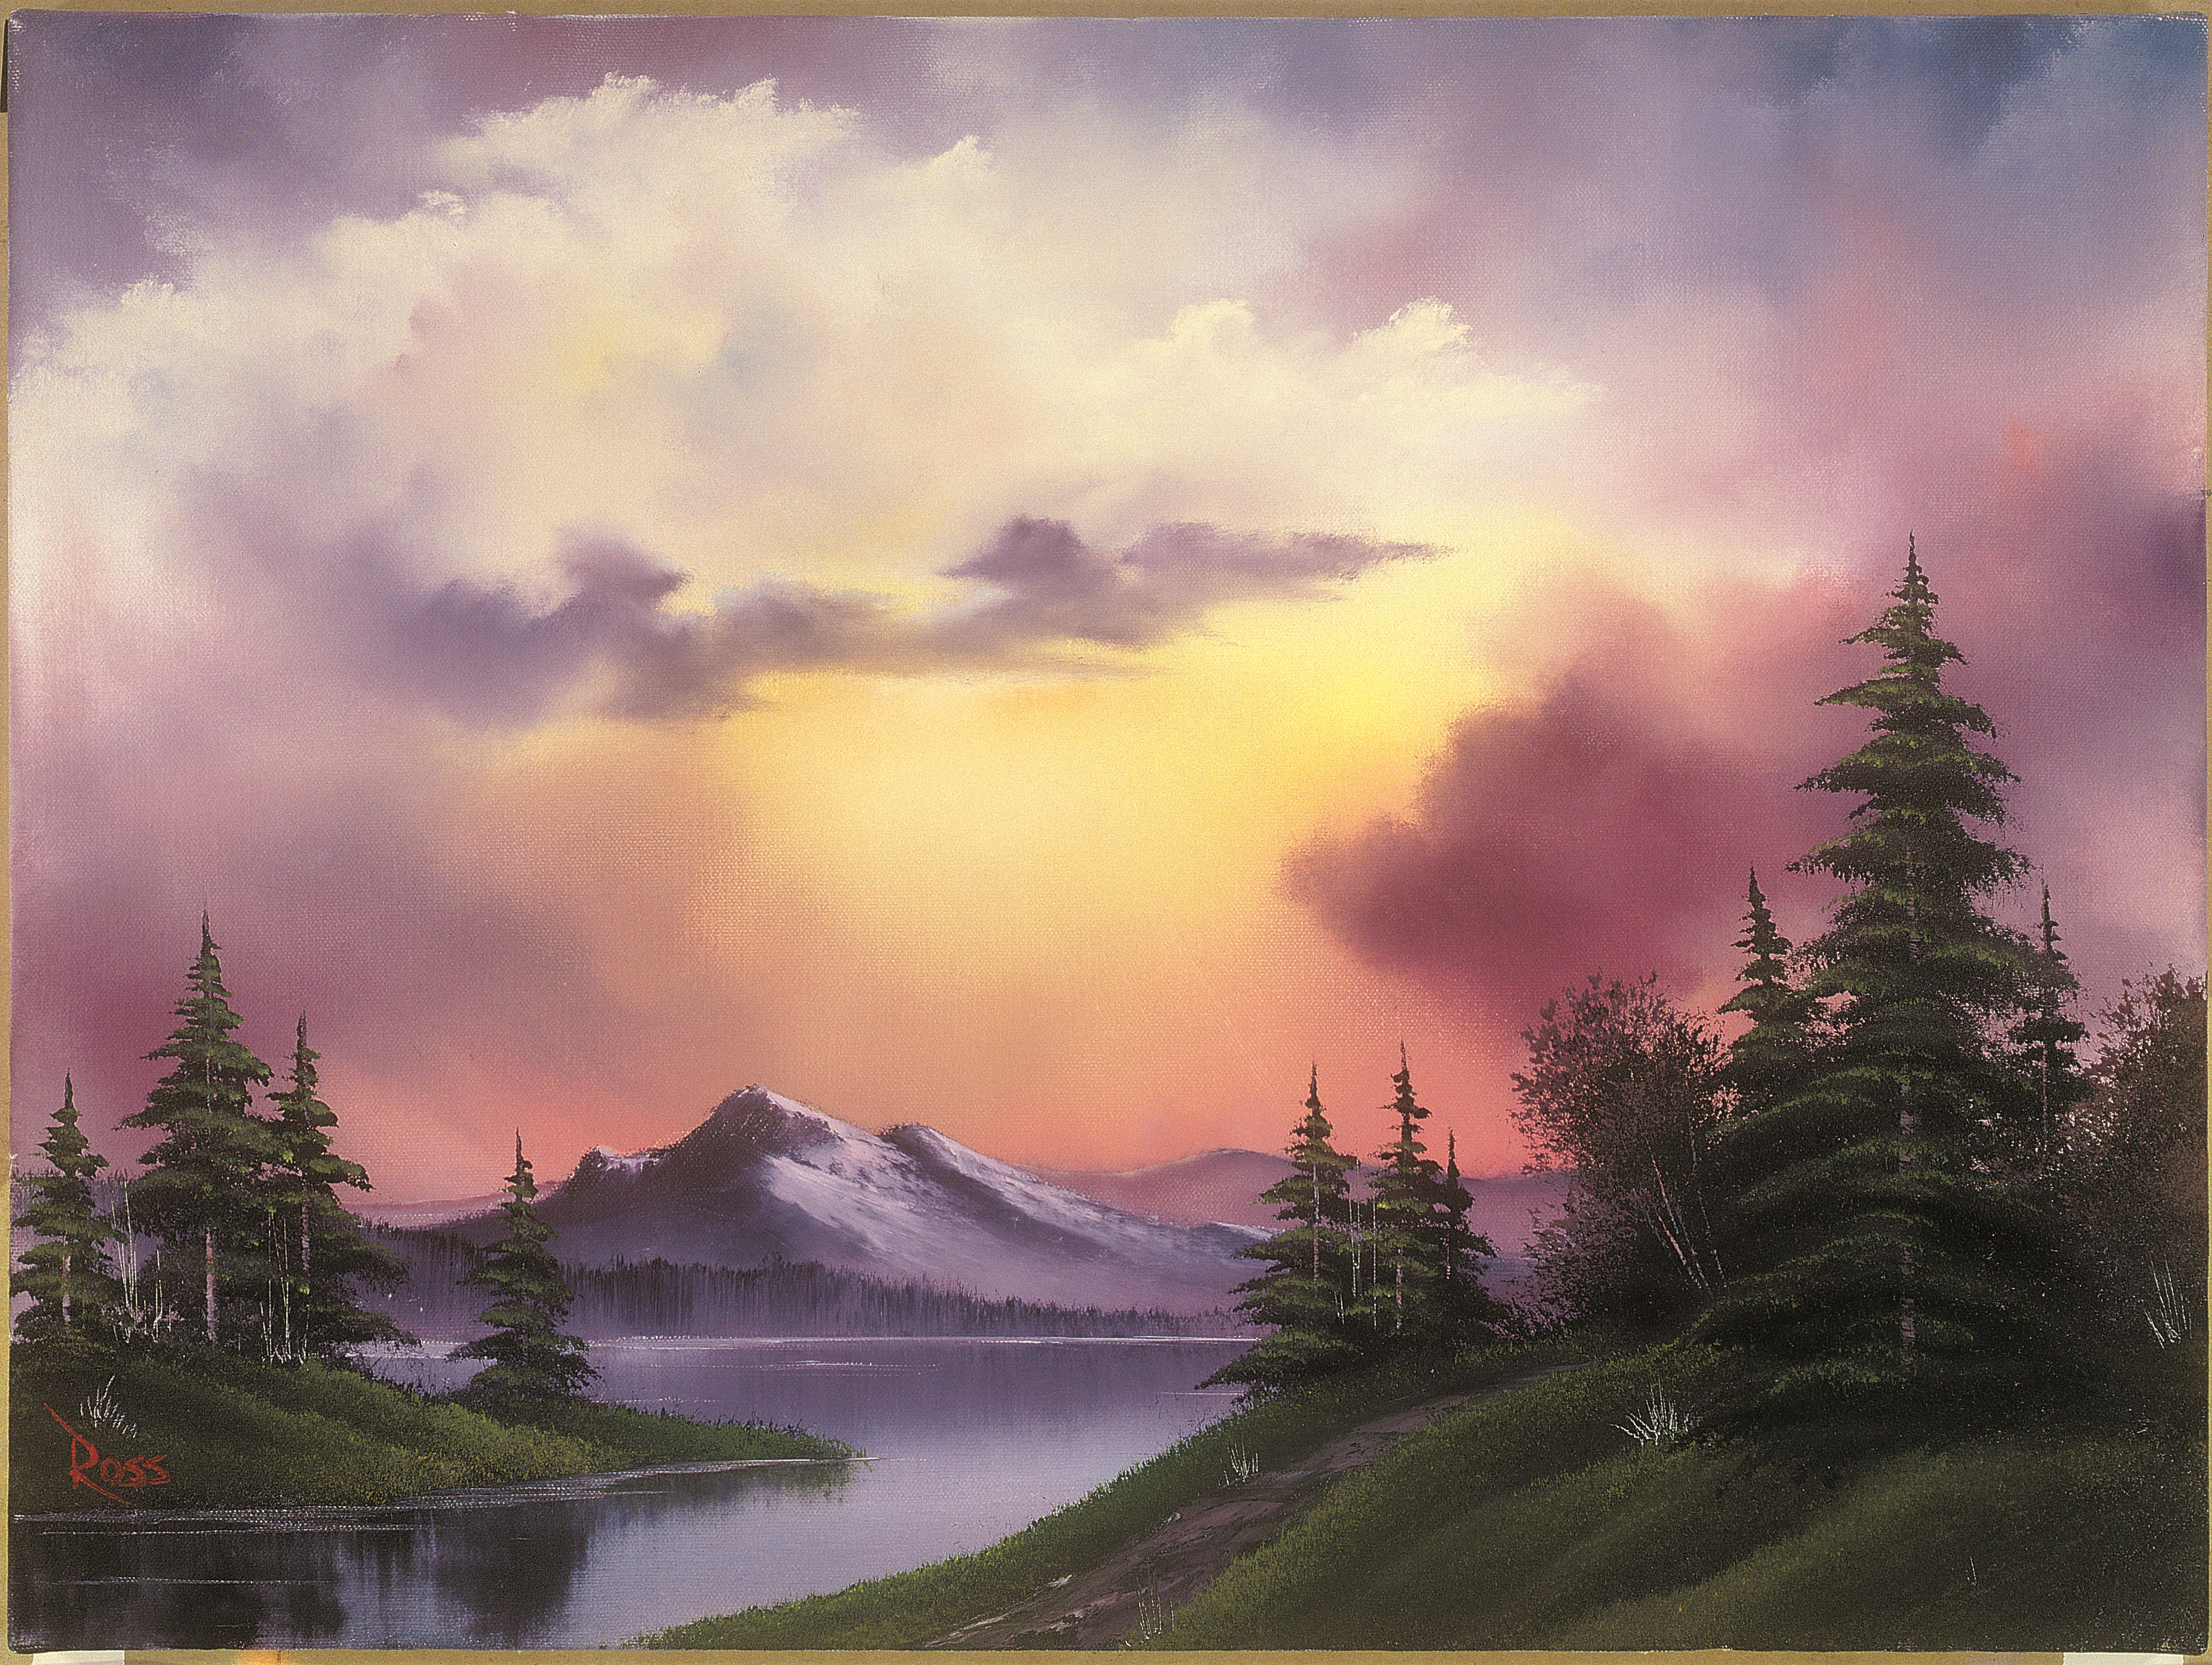 Bob Ross, the TV painter, is finally being recognized in an